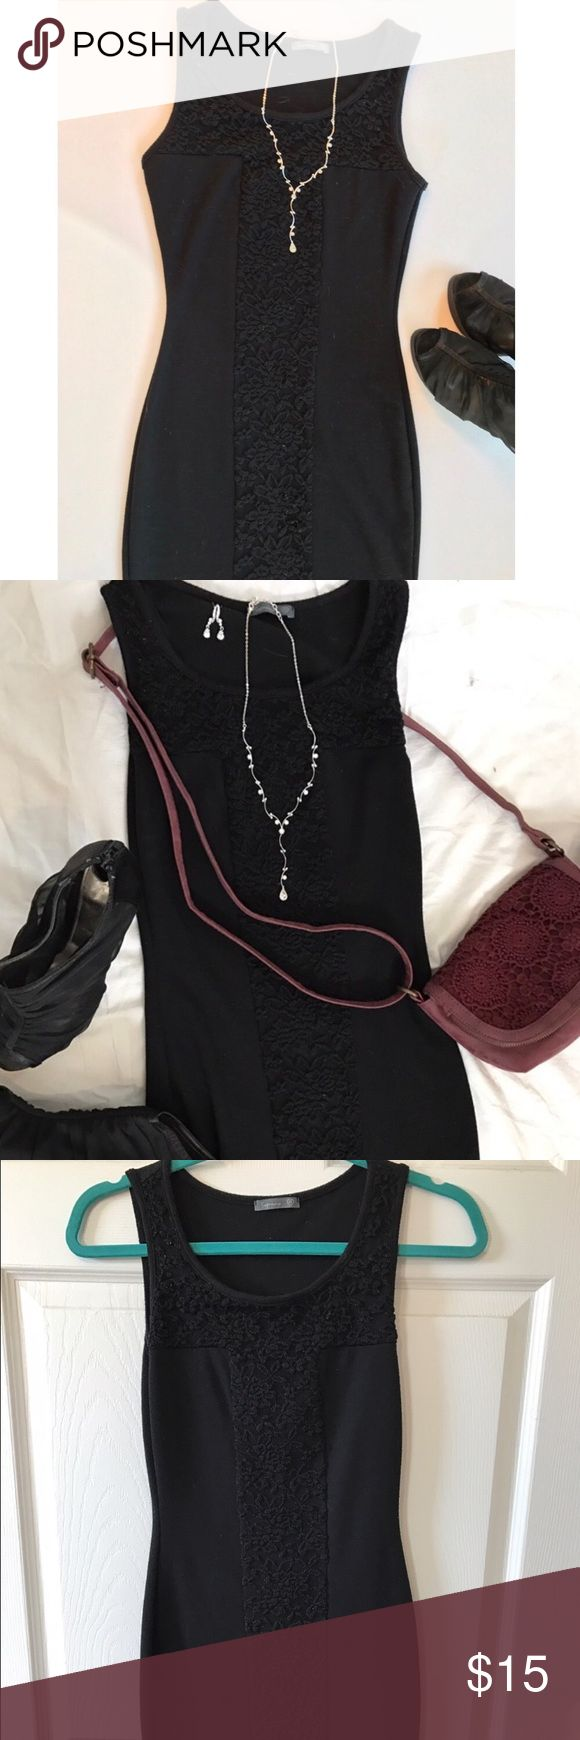 NWOT Little black cocktail dress Cute and sexy little black cocktail dress. Brand new body con. Dress it up or down. Every girl needs a little black dress 😉 Soprano Dresses Mini